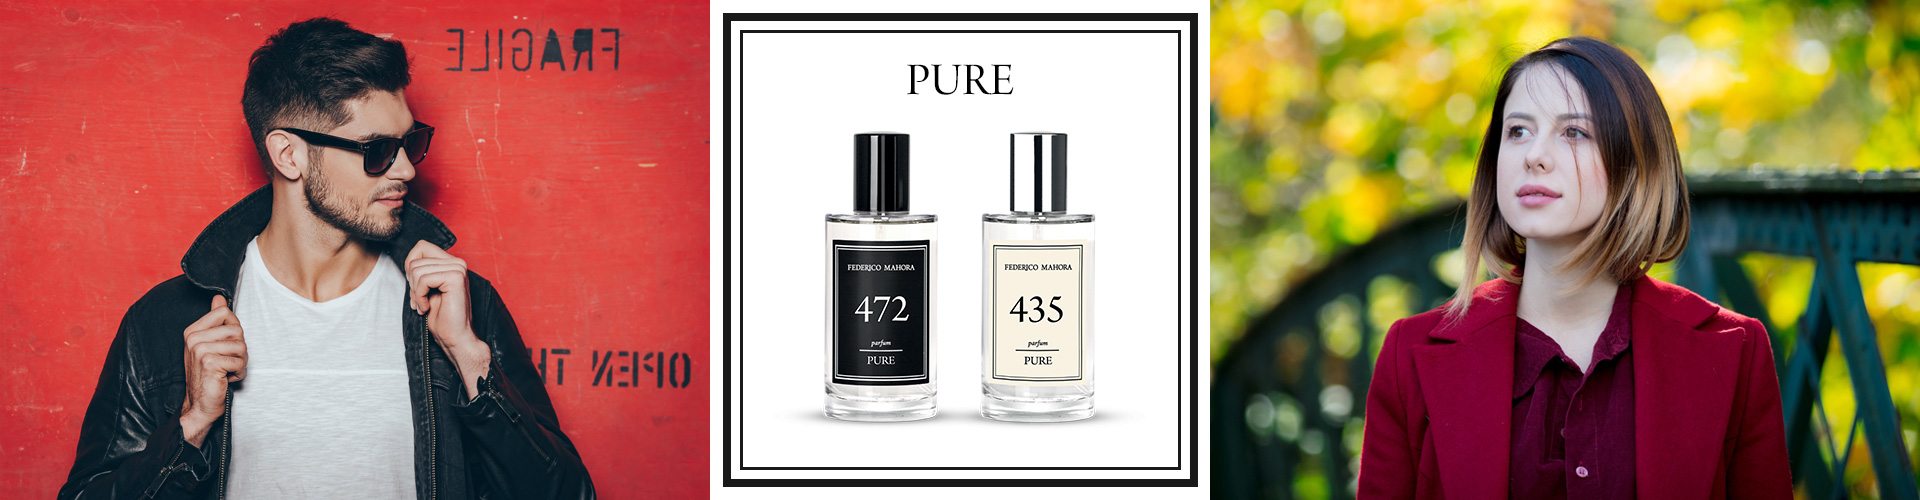 PURE 20 New Collection